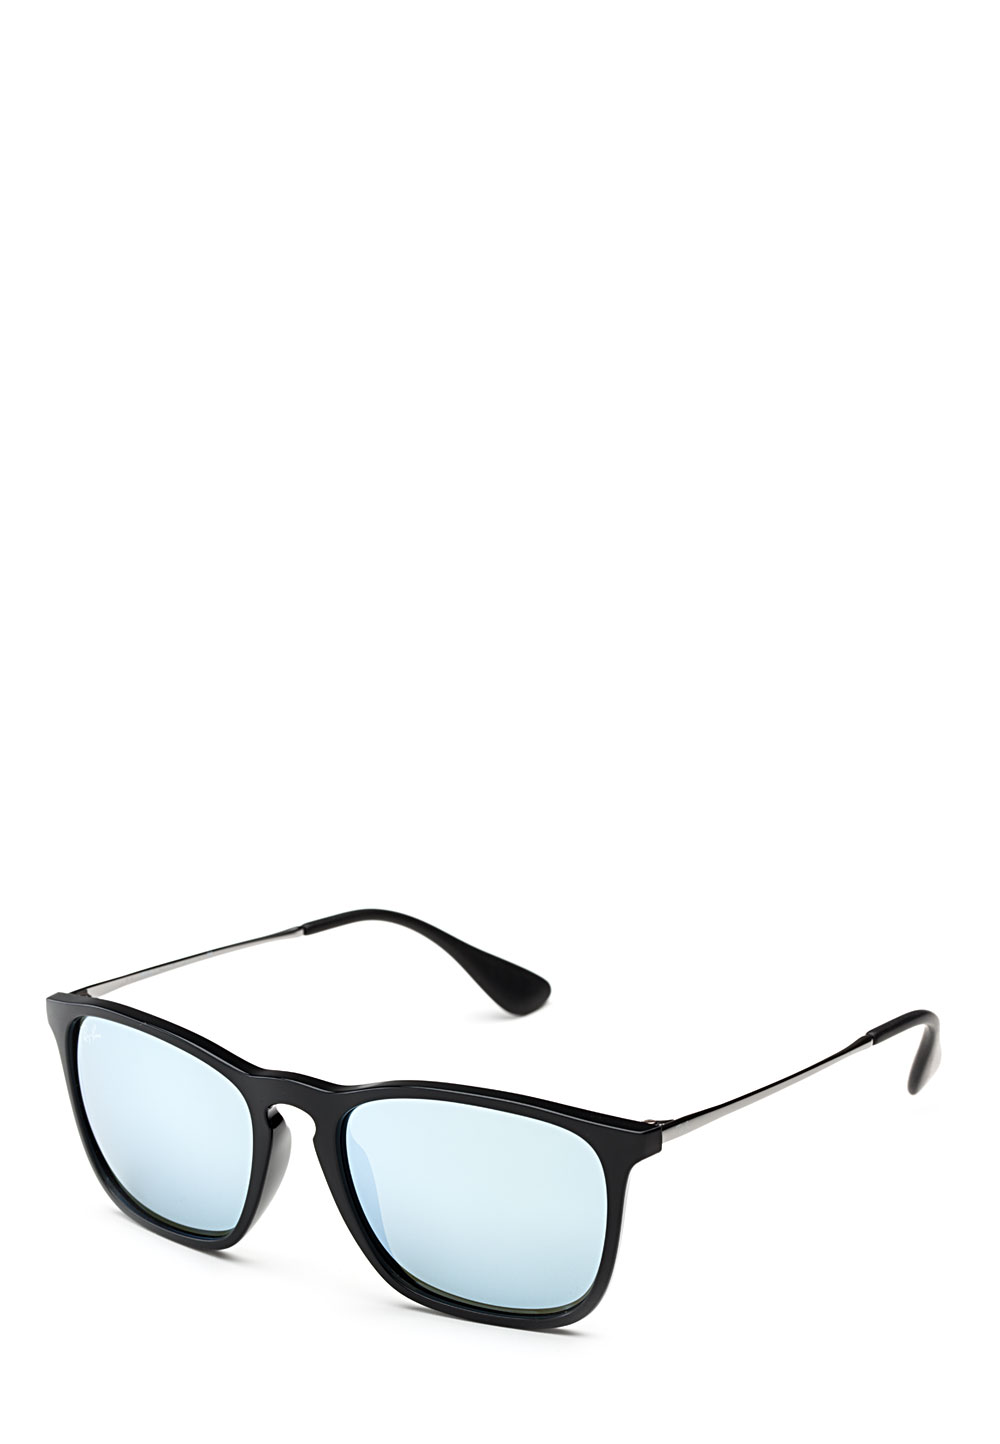 ray ban sonnenbrille unisex brille chris uv 400 schwarz. Black Bedroom Furniture Sets. Home Design Ideas